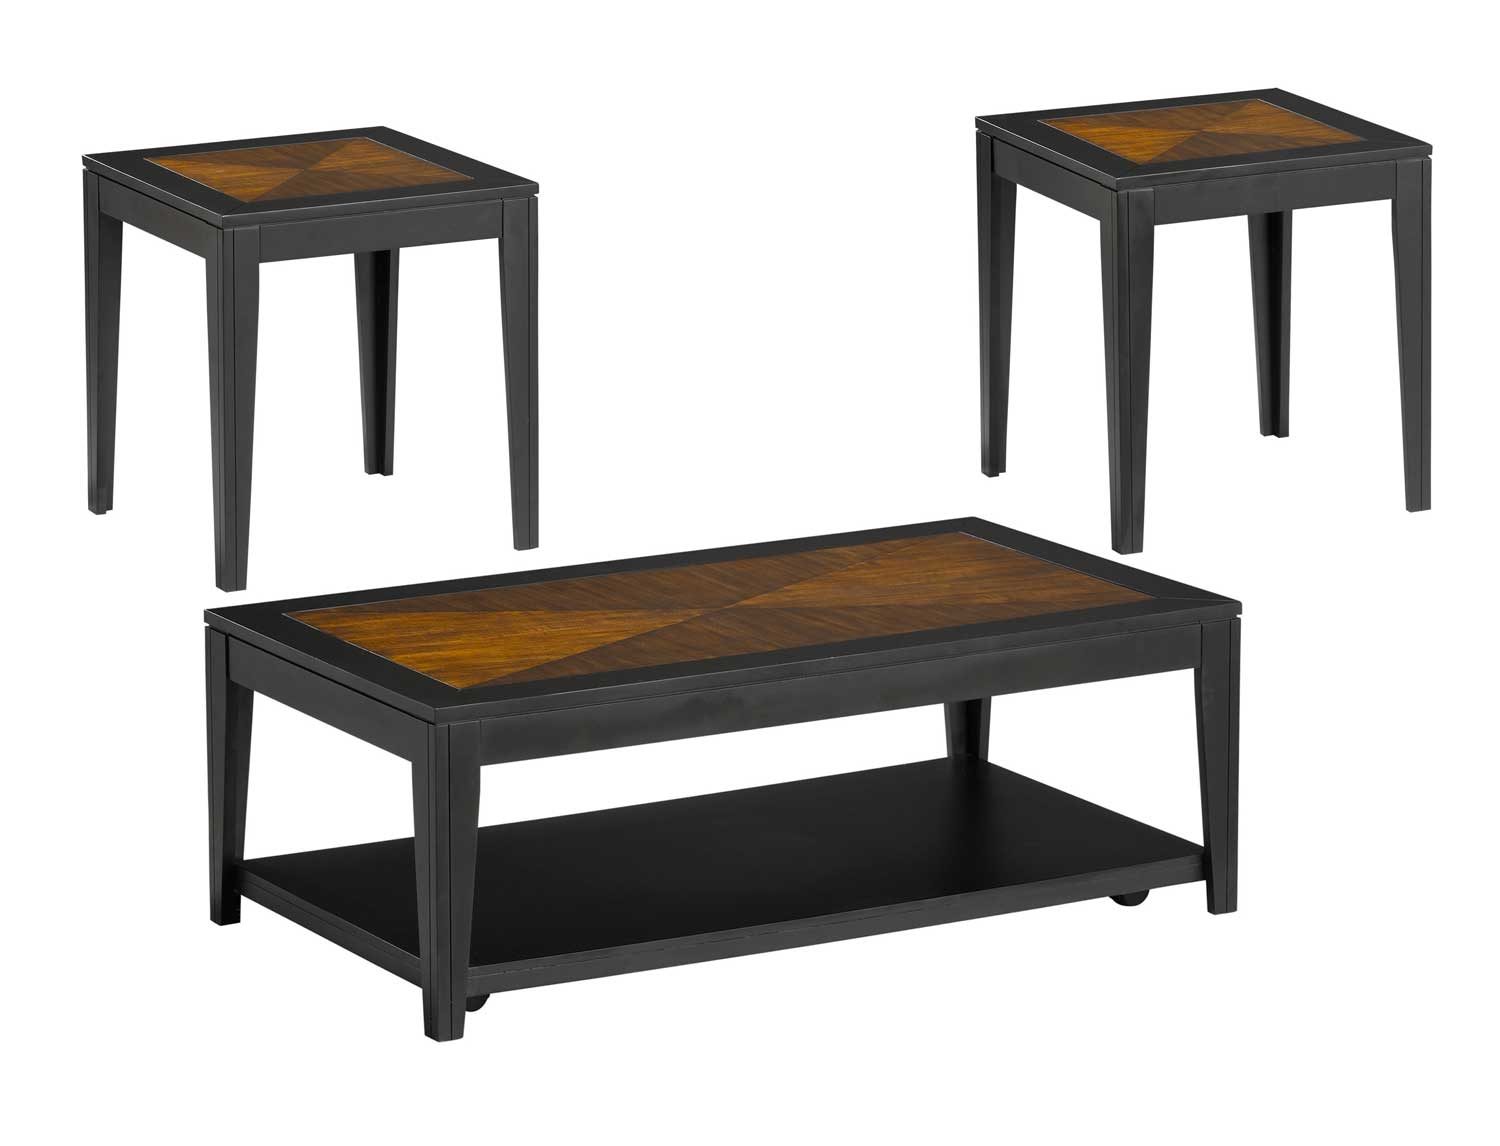 Jackson 874 Series 3 Pack Tables Includes 1 Sofa and 2 End Tables